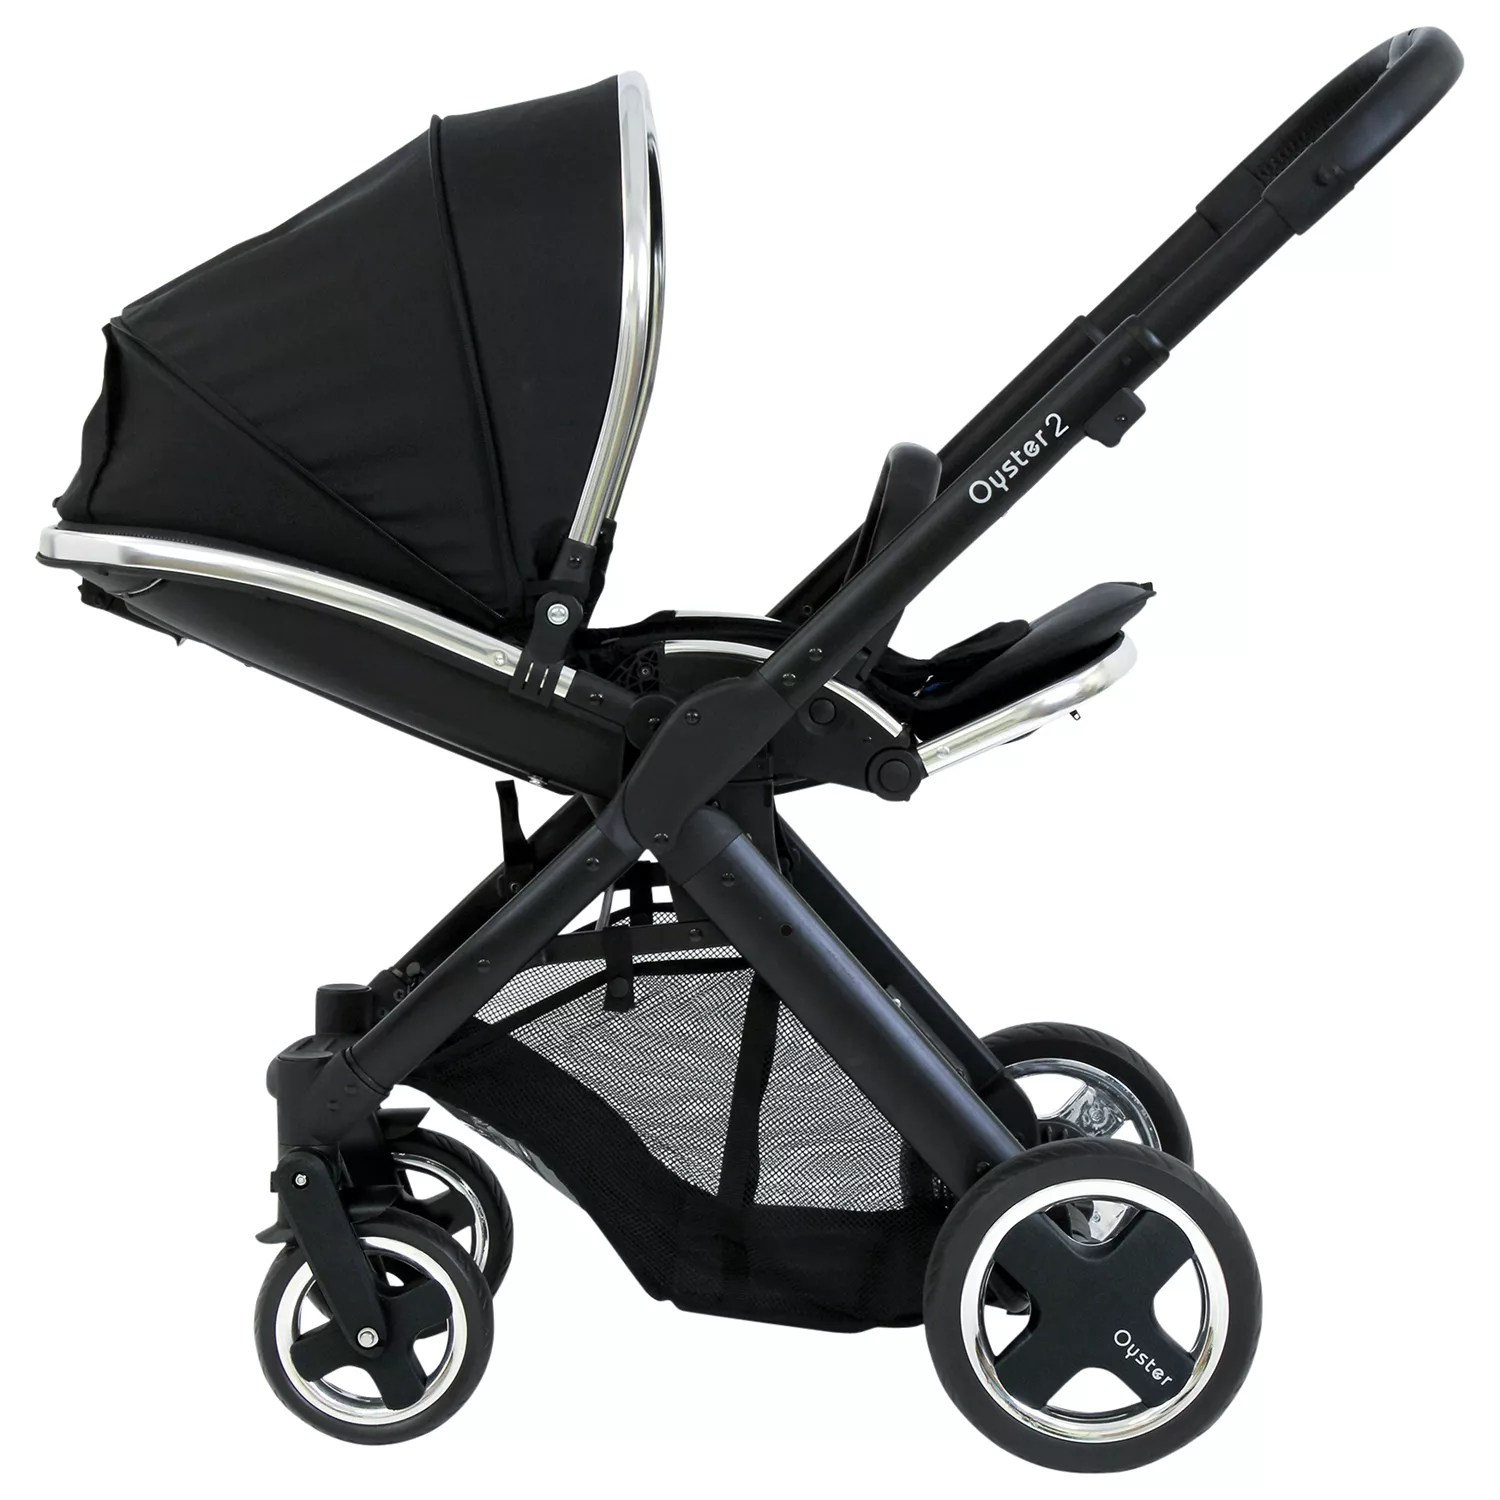 Pram Extra Seat Babystyle Oyster 2 Pushchair Chassis And Seat Black